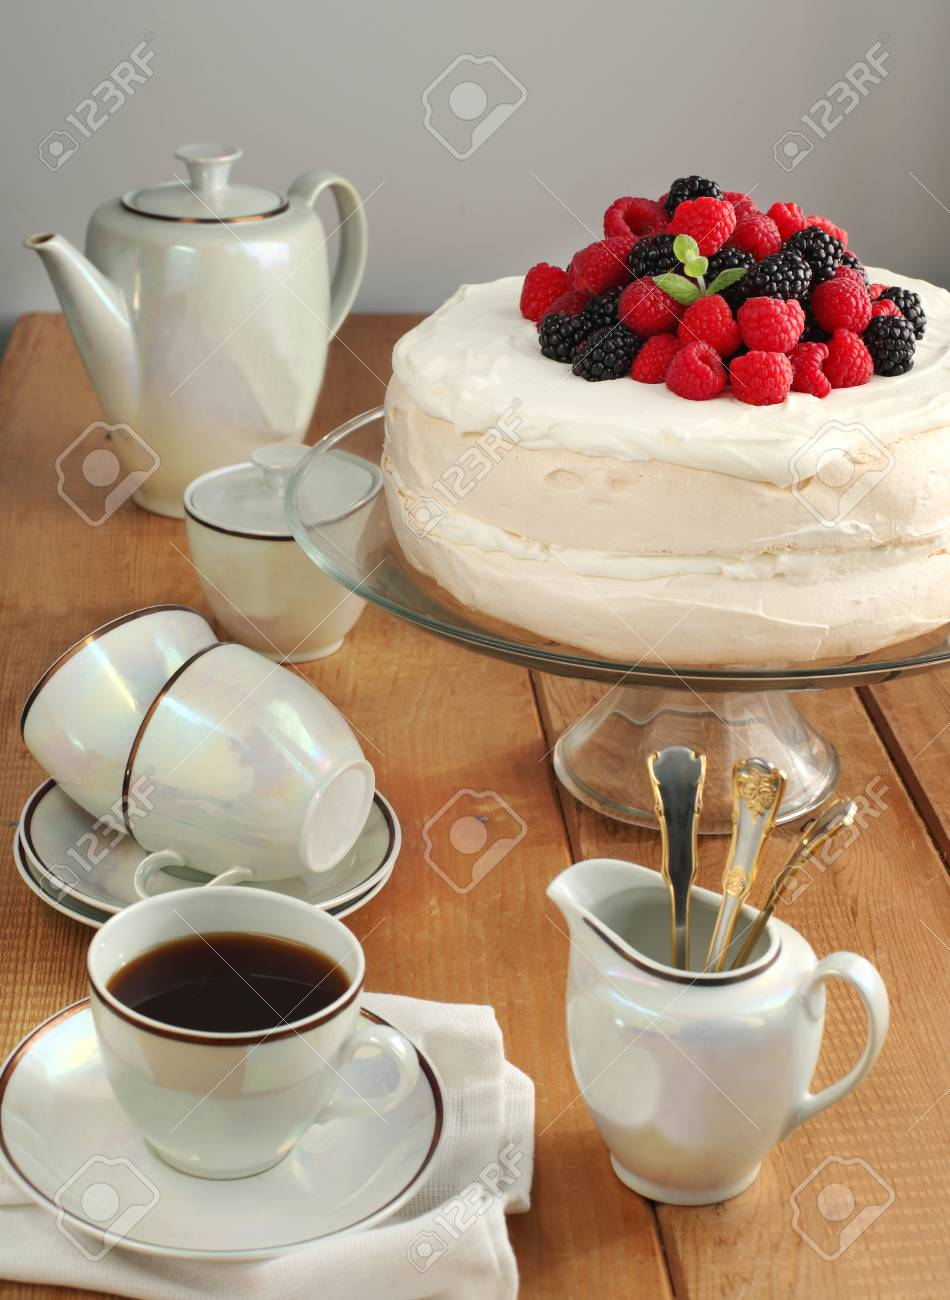 Meringue cake with berries Stock Photo - 17263505